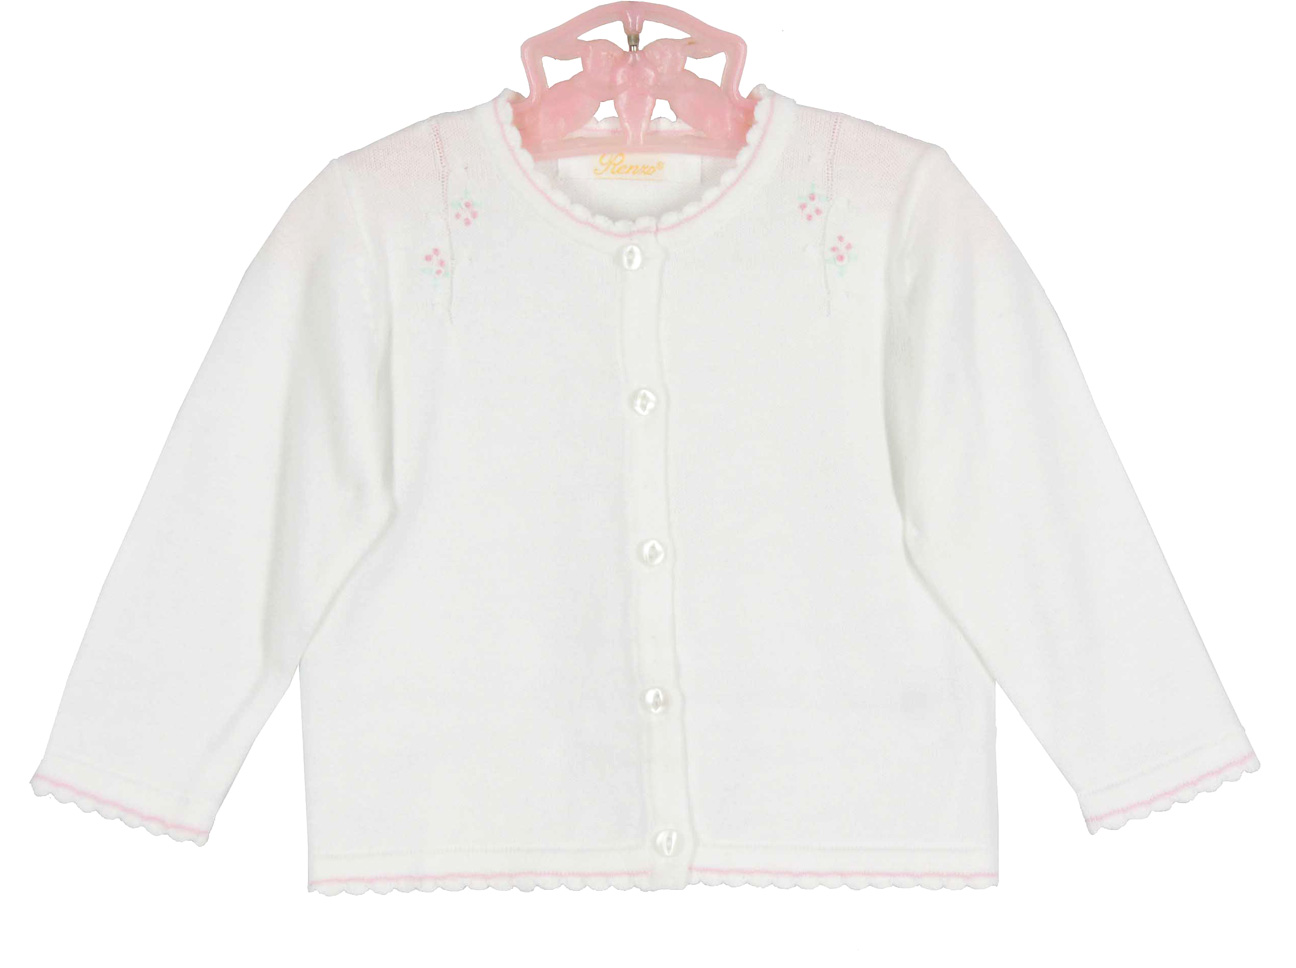 Renzo white cotton knit cardigan sweater with pink flowers,baby ...